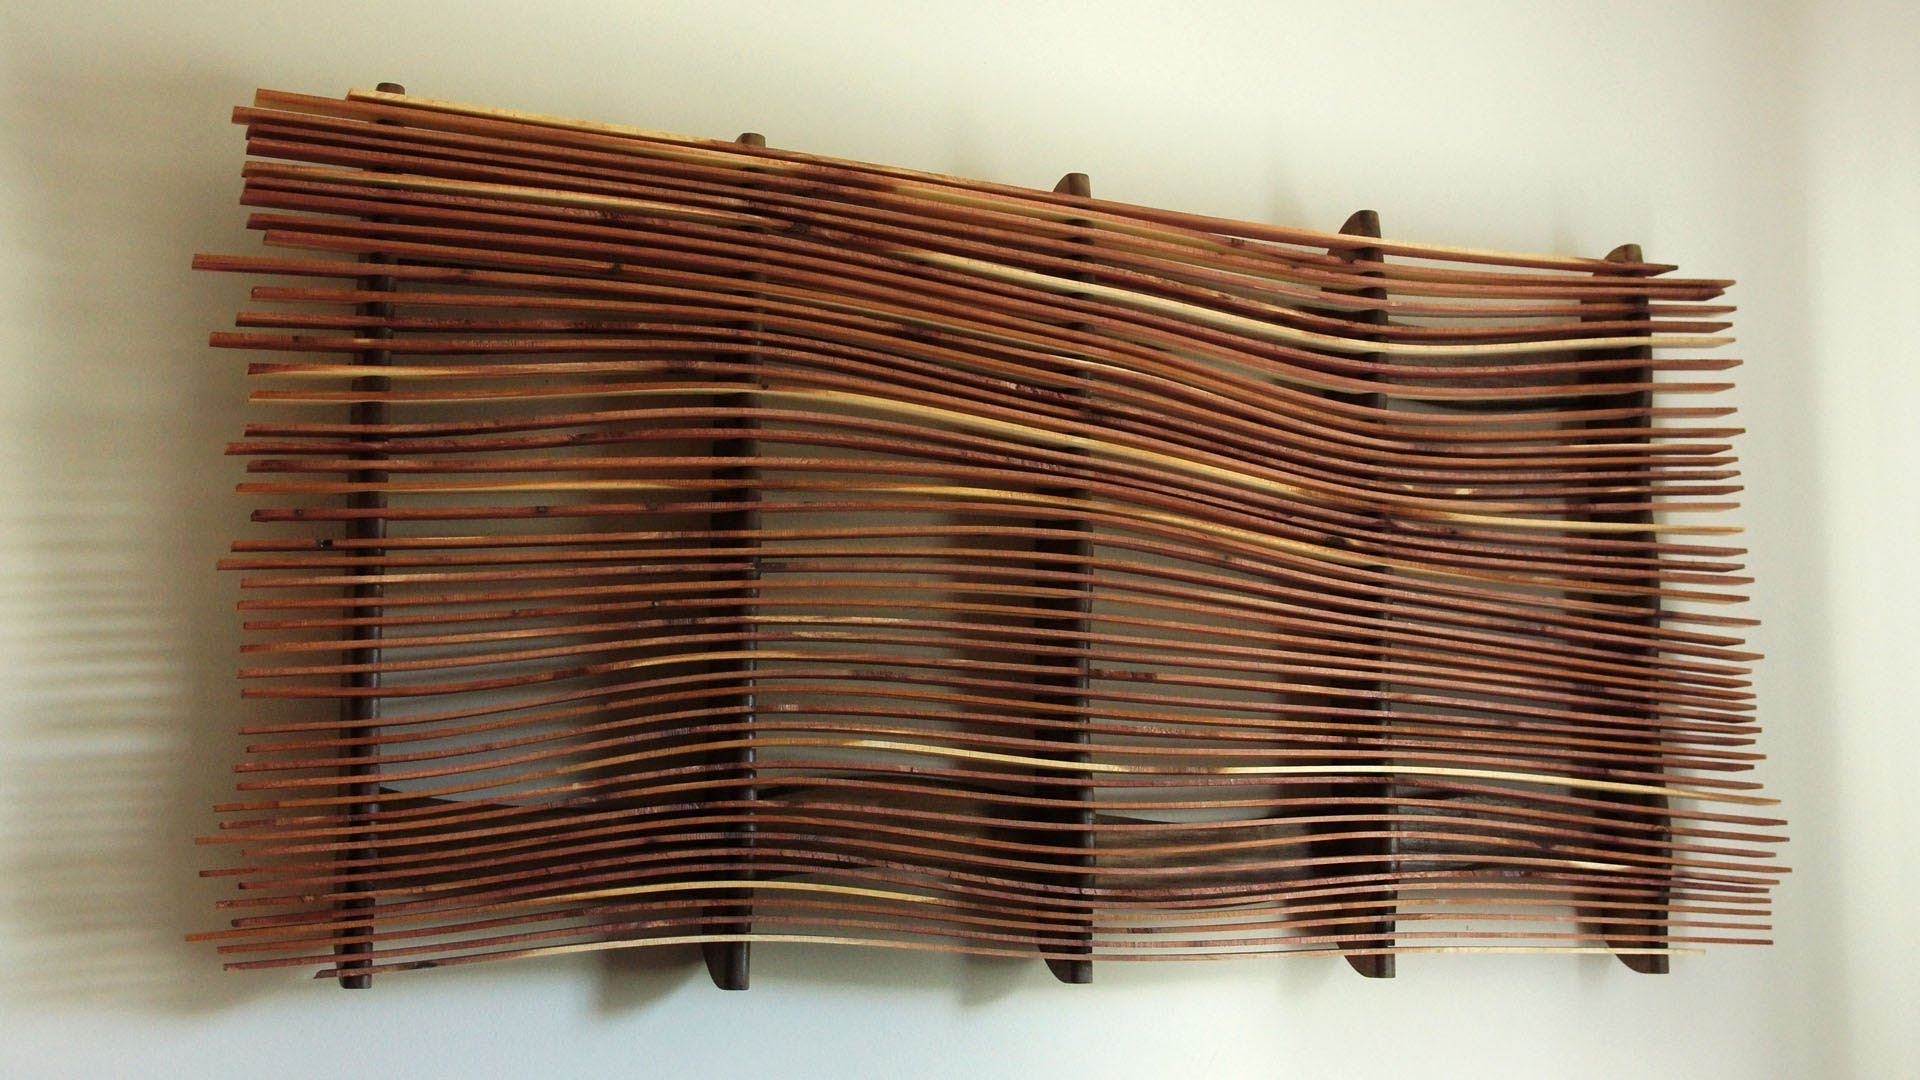 Wooden Wall Art Intended For Well Liked Wall Art From Scrap Wood – Youtube (View 6 of 15)